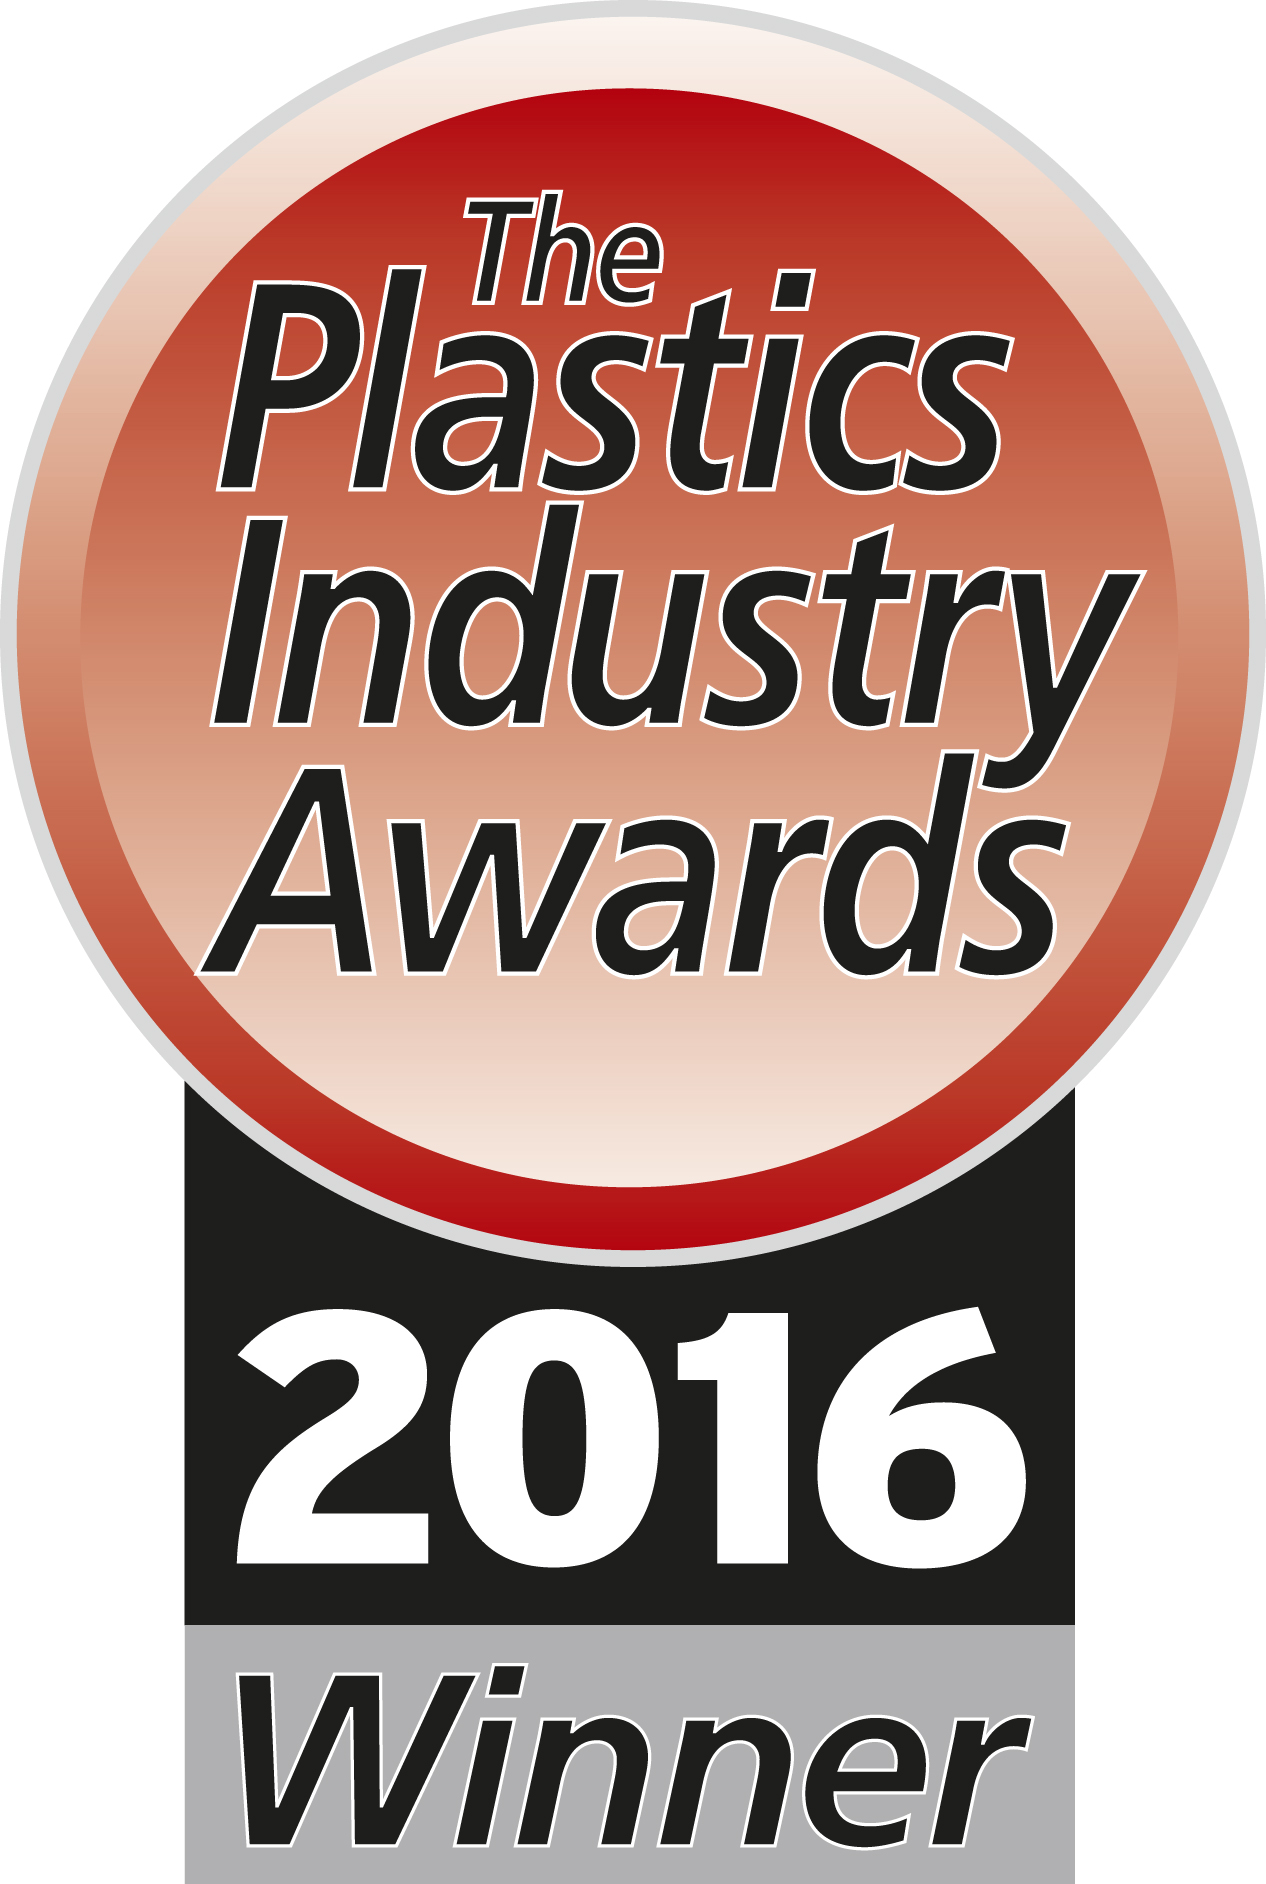 Plastics Industry Award 2016 Winner: Toolmaker of the Year